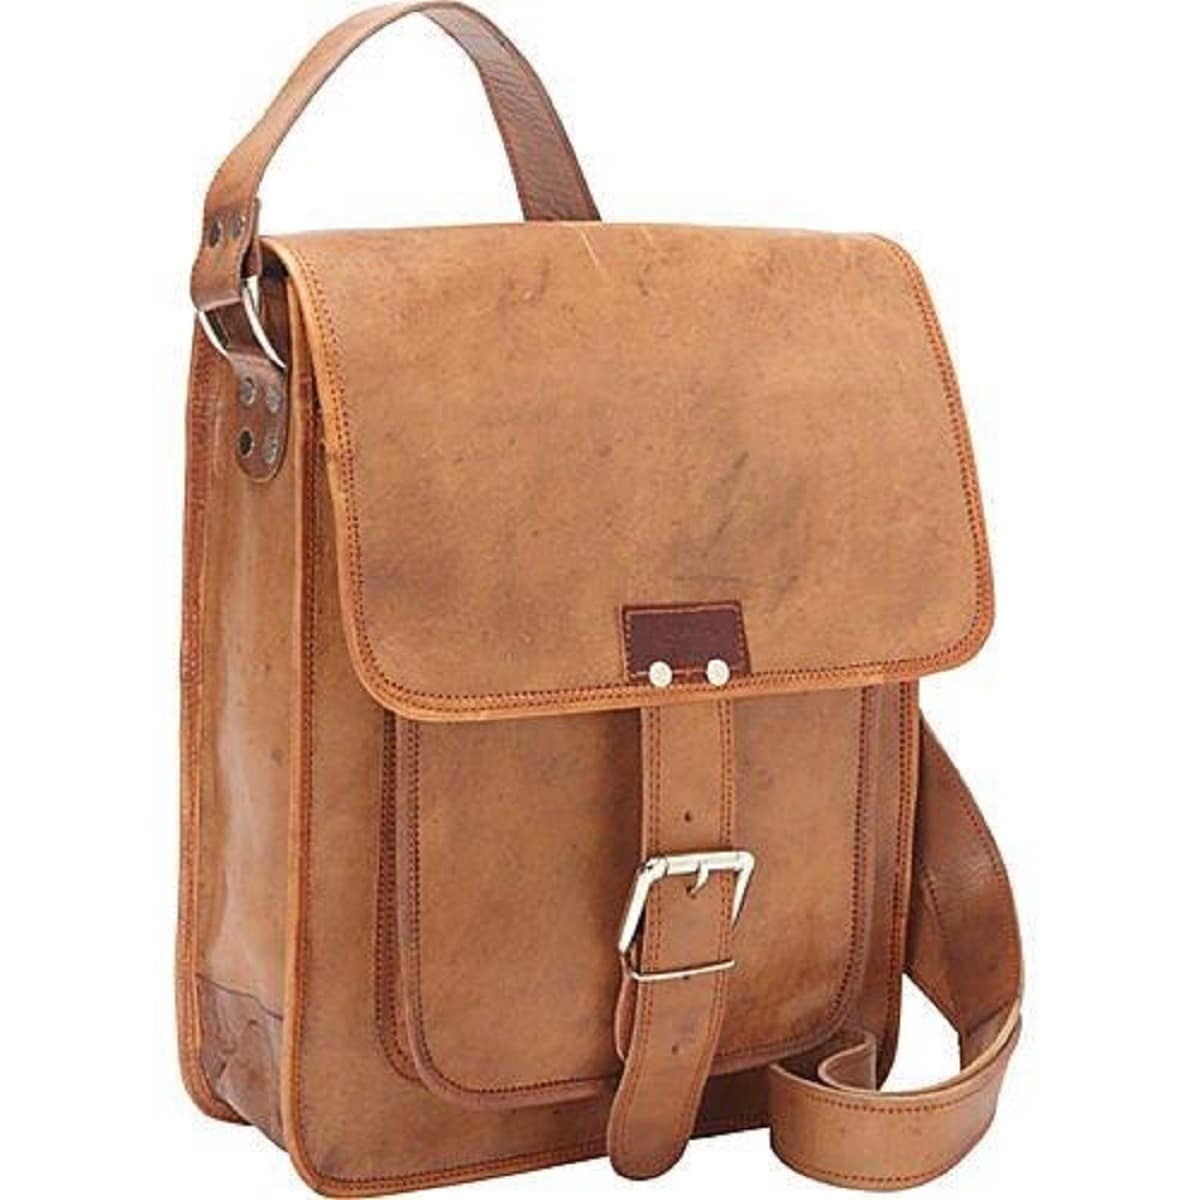 Sharo Retro One Strap Close Messenger Bag On Free Shipping Today 10075844